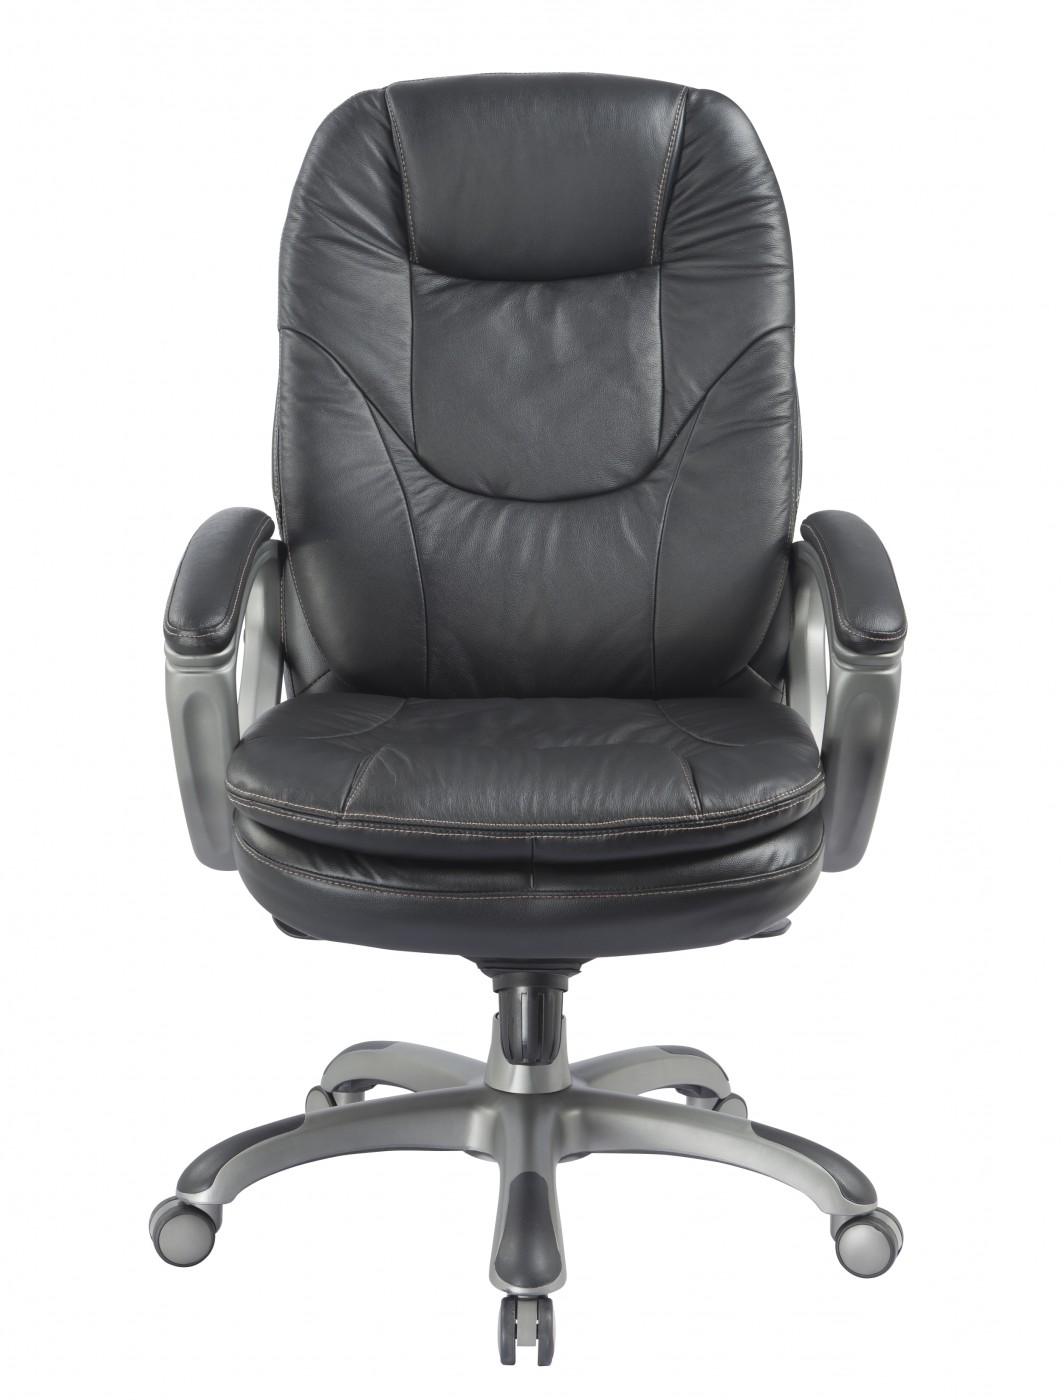 leather office chair. kiev leather office chair bcl/u646 - enlarged view